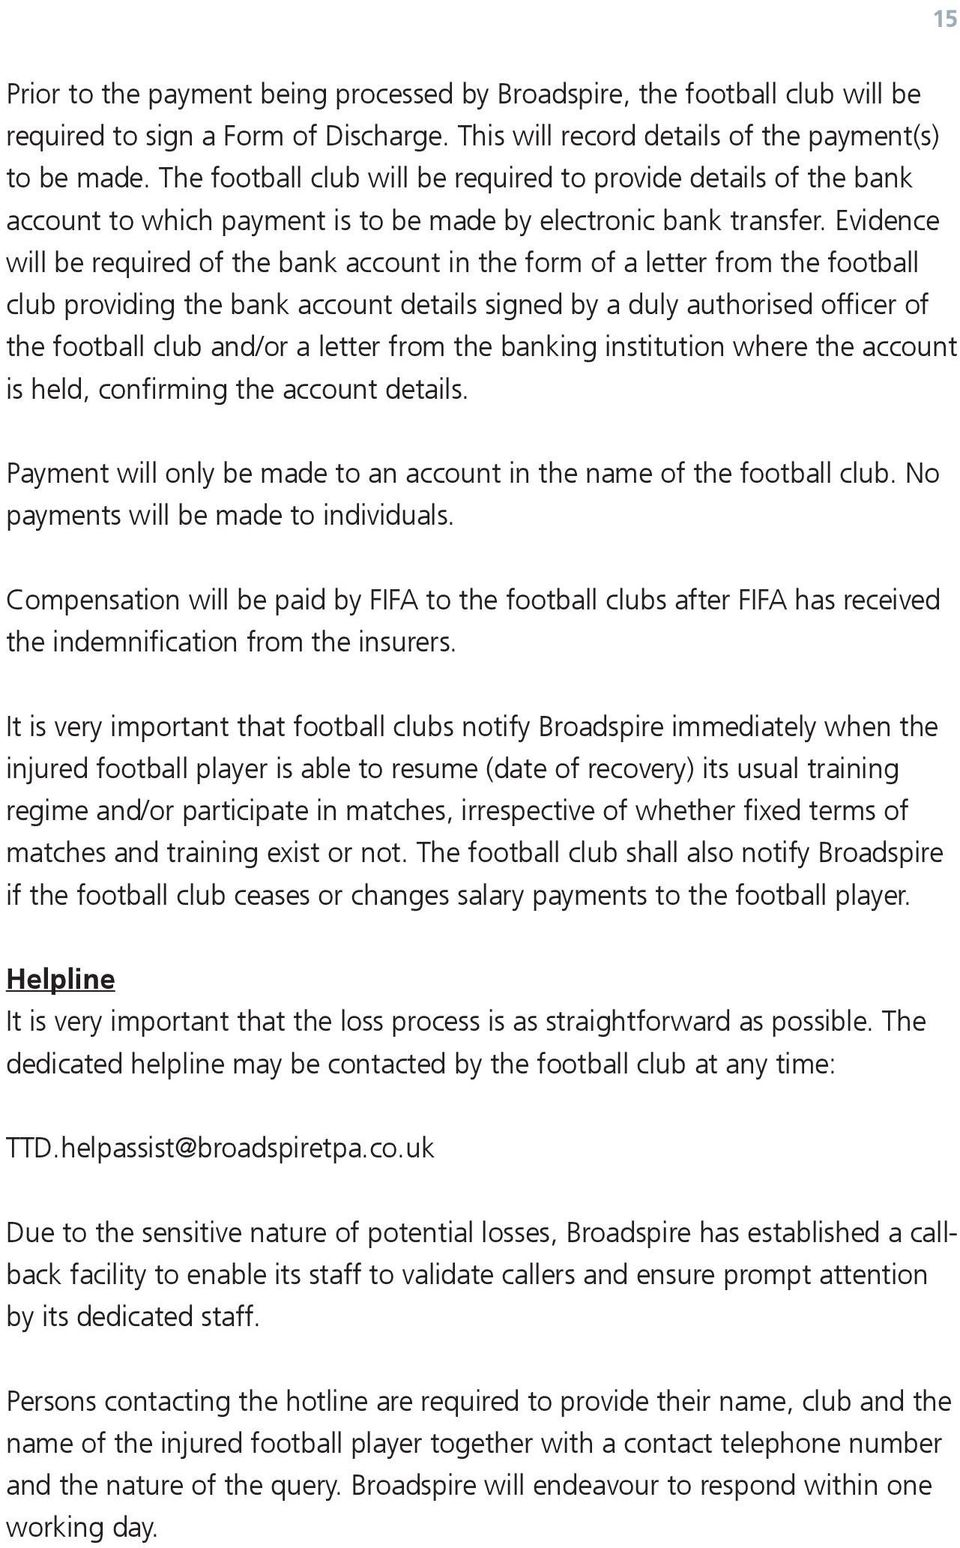 Evidence will be required bank account in form a letter from football club providing bank account details signed by a duly authorised ficer football club /or a letter from banking institution where